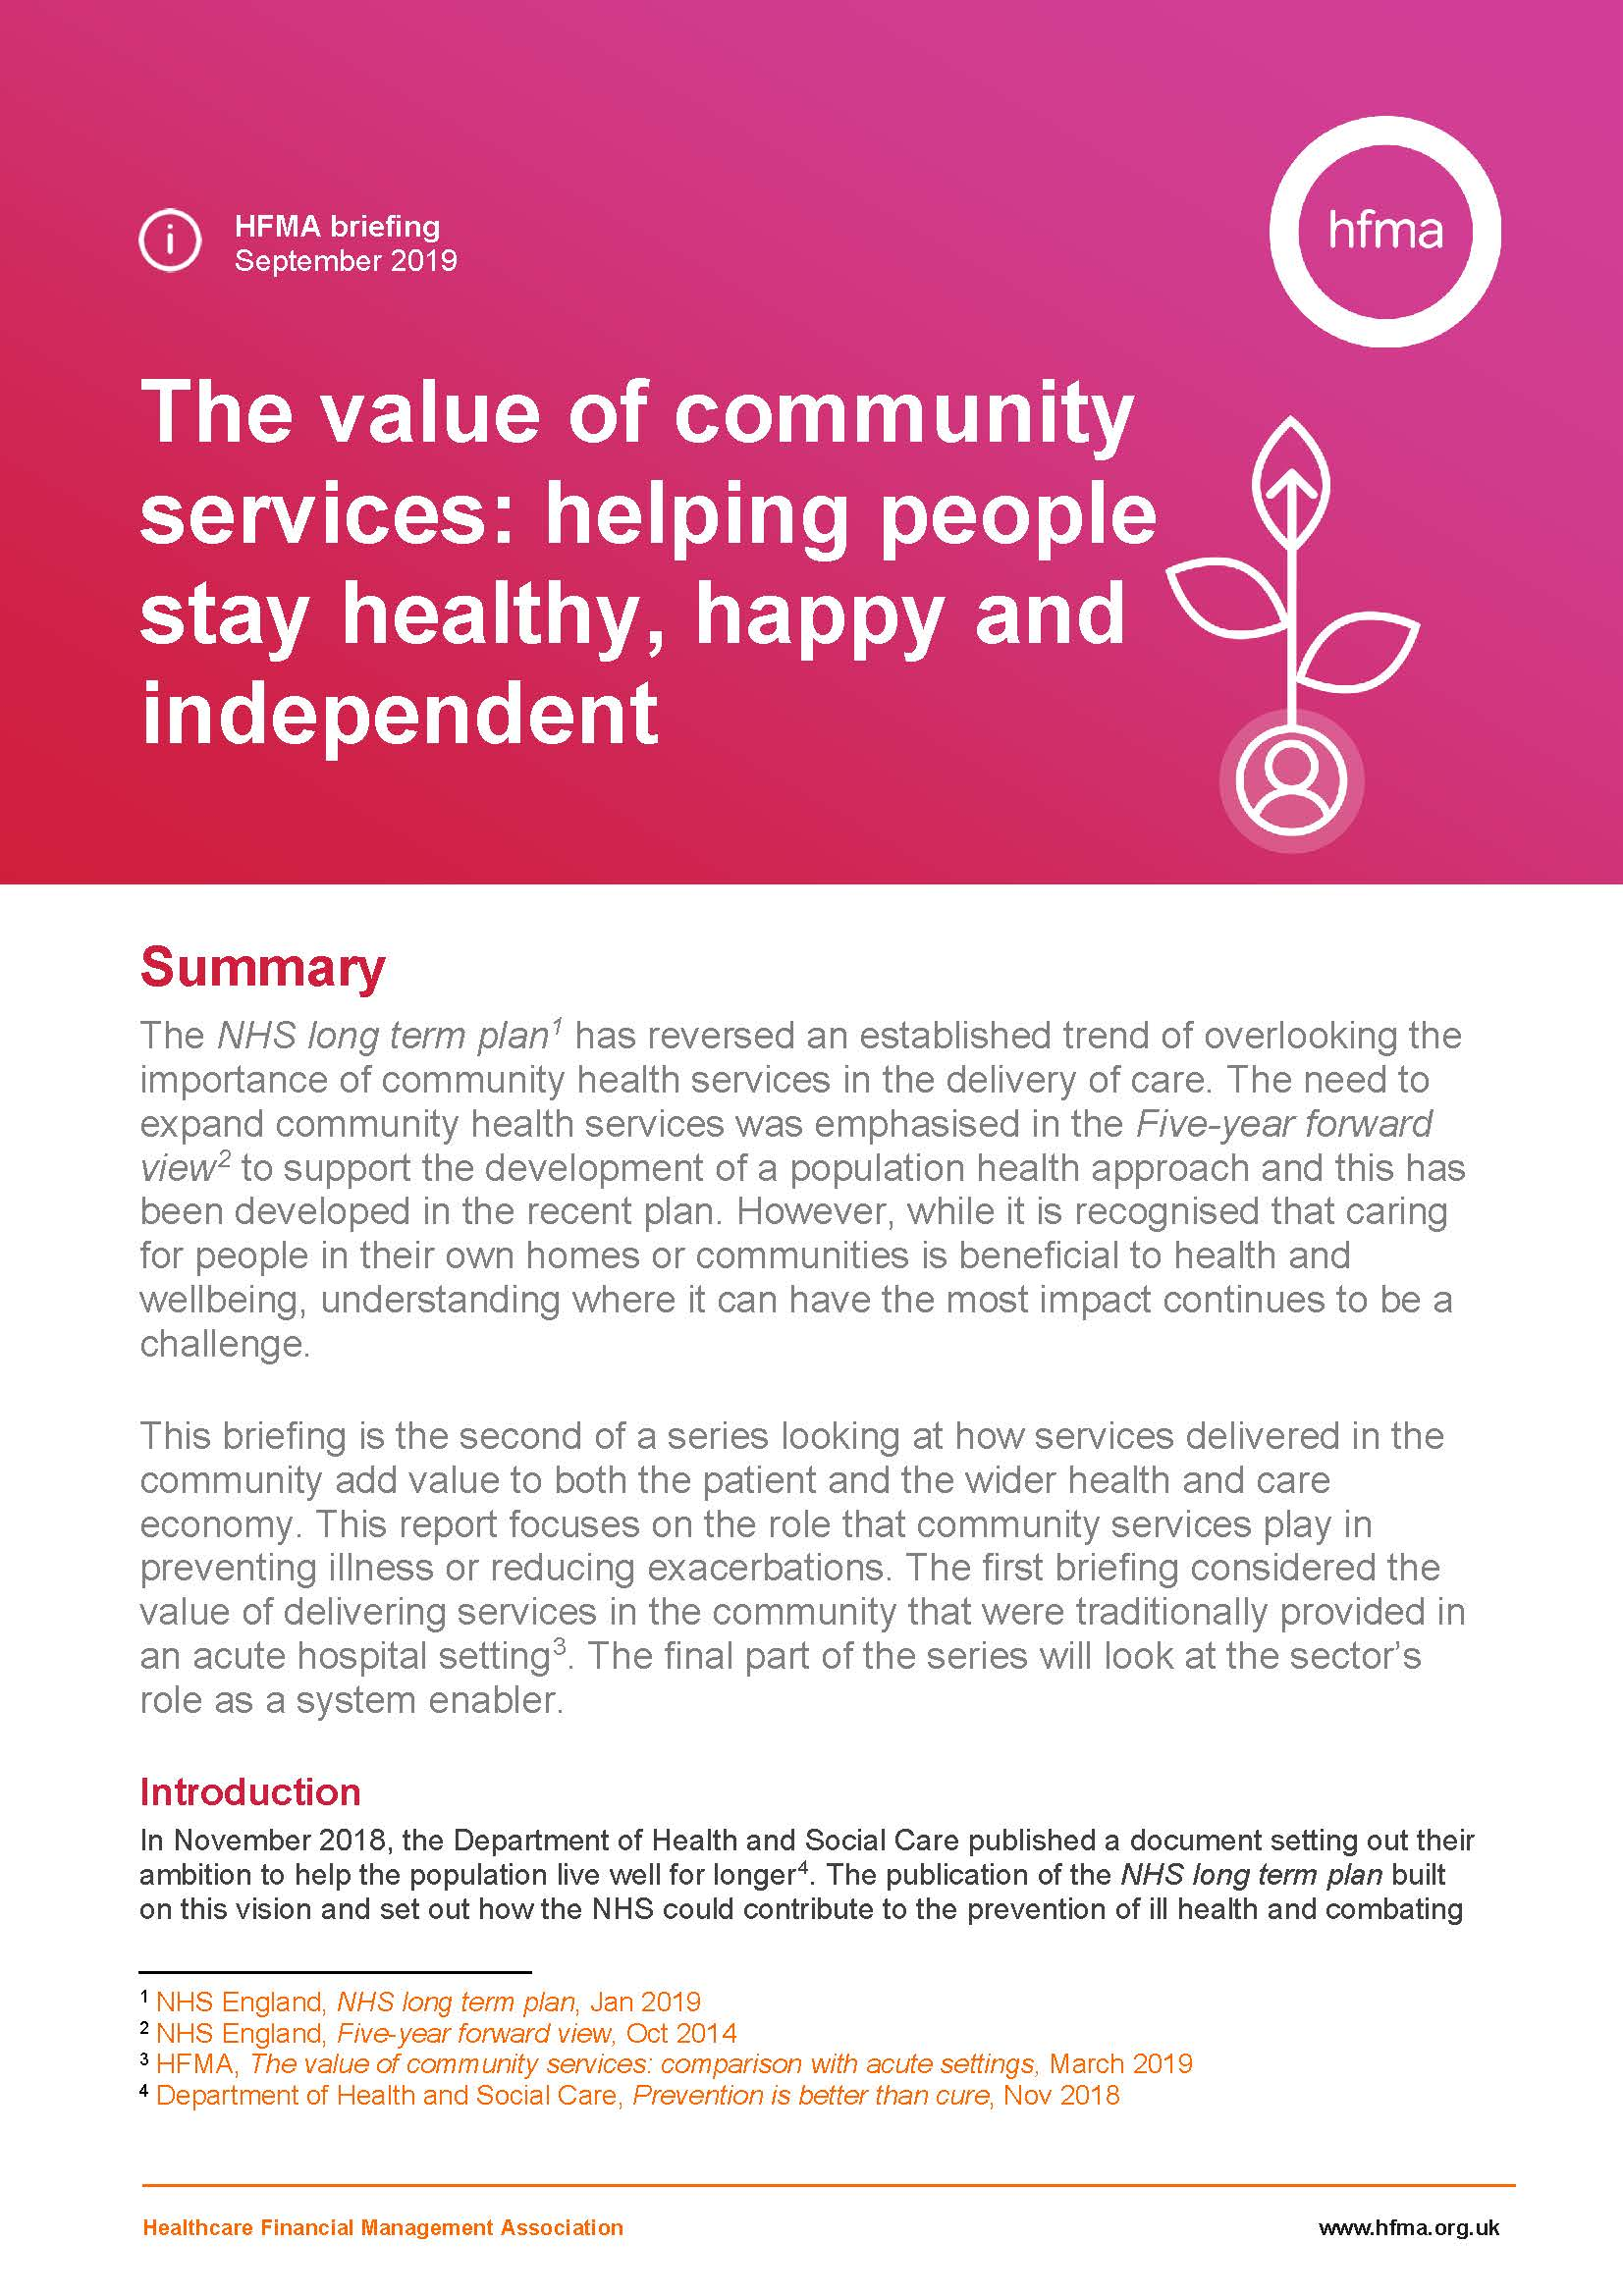 The value of community services: helping people stay healthy, happy and independent